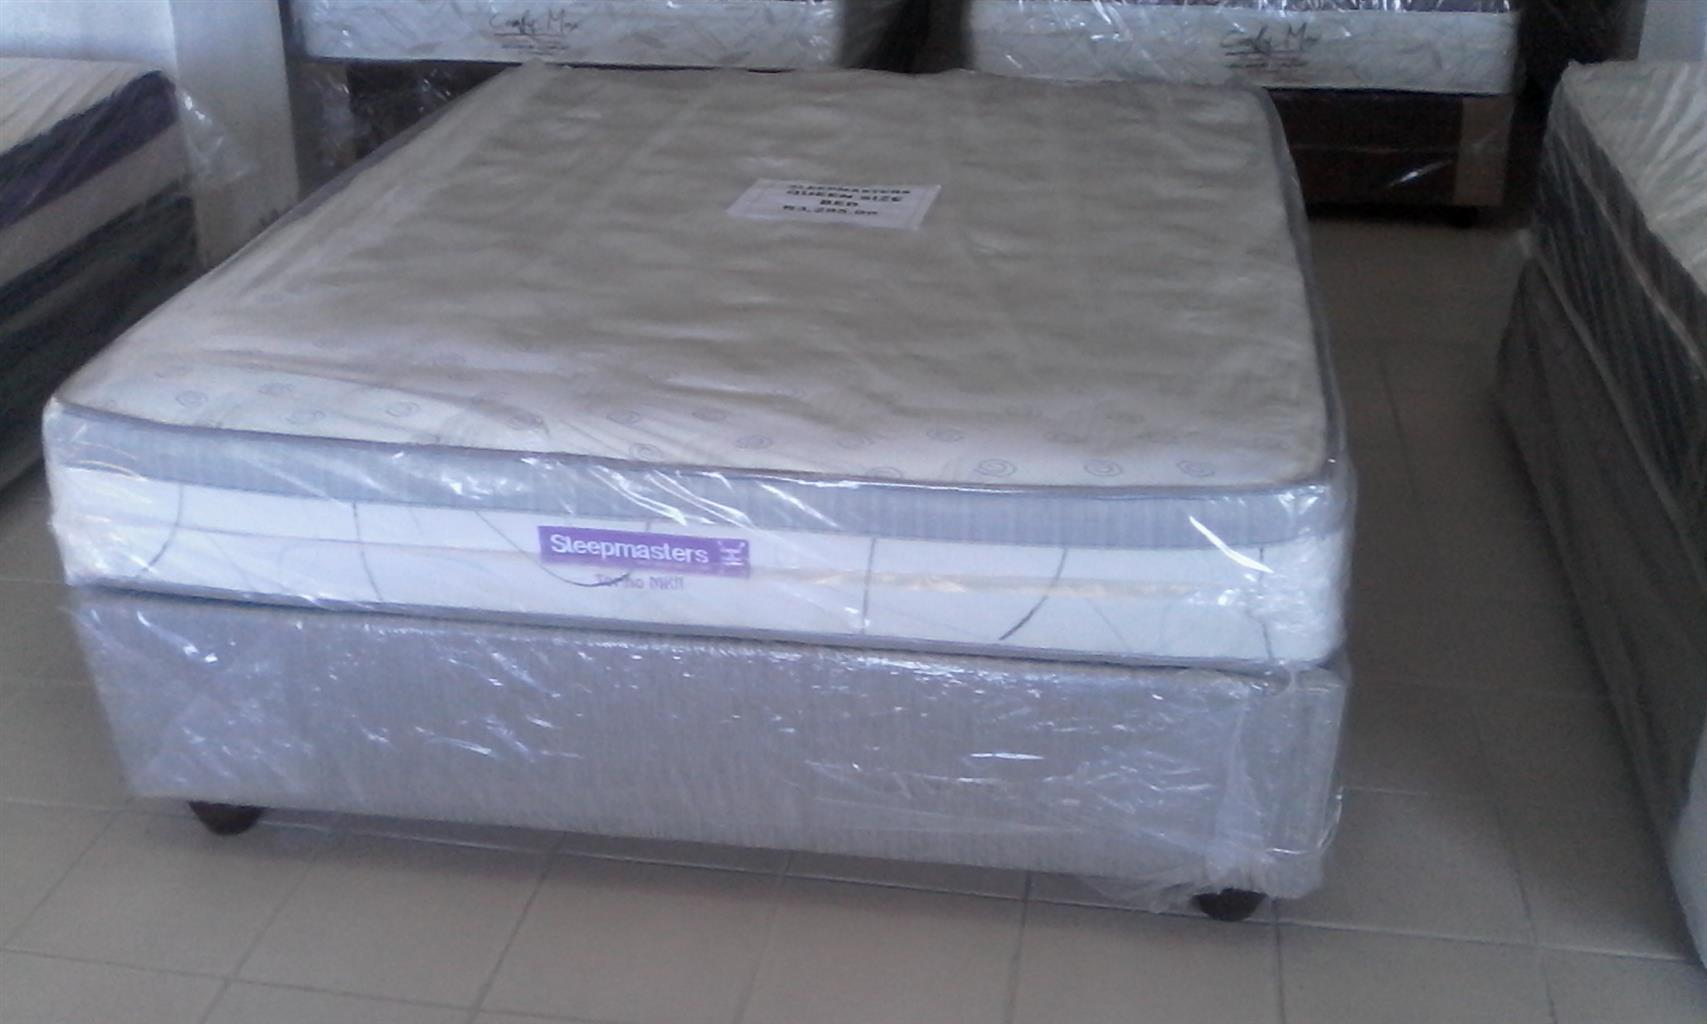 New Double Size Restonic/Edblo/Sleepmasters/Comfy Max/Sealy Beds from R2700